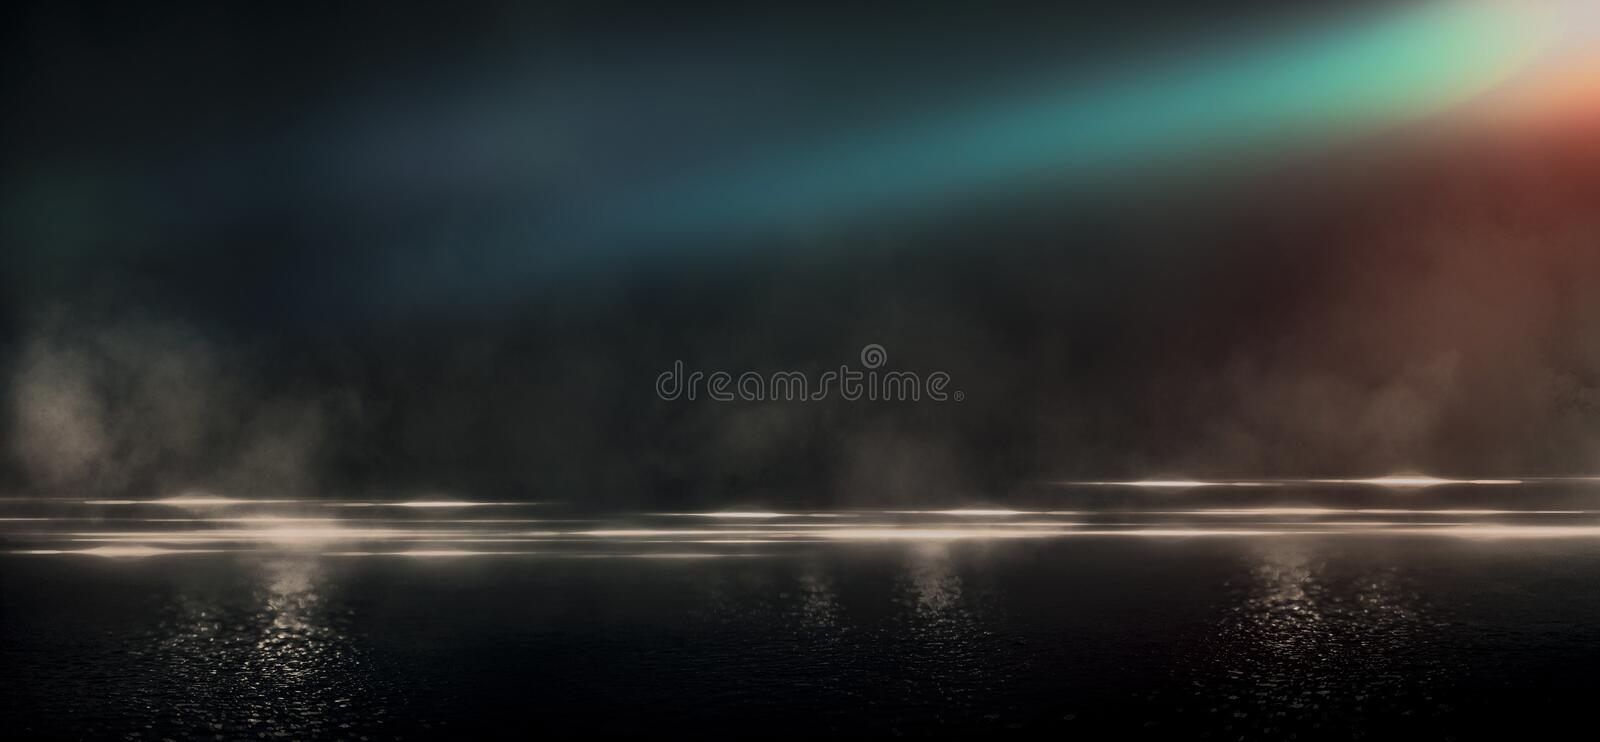 Wet asphalt, reflection of neon lights, a searchlight, smoke. Abstract light in a dark empty street with smoke, smog. Dark background scene of empty street vector illustration